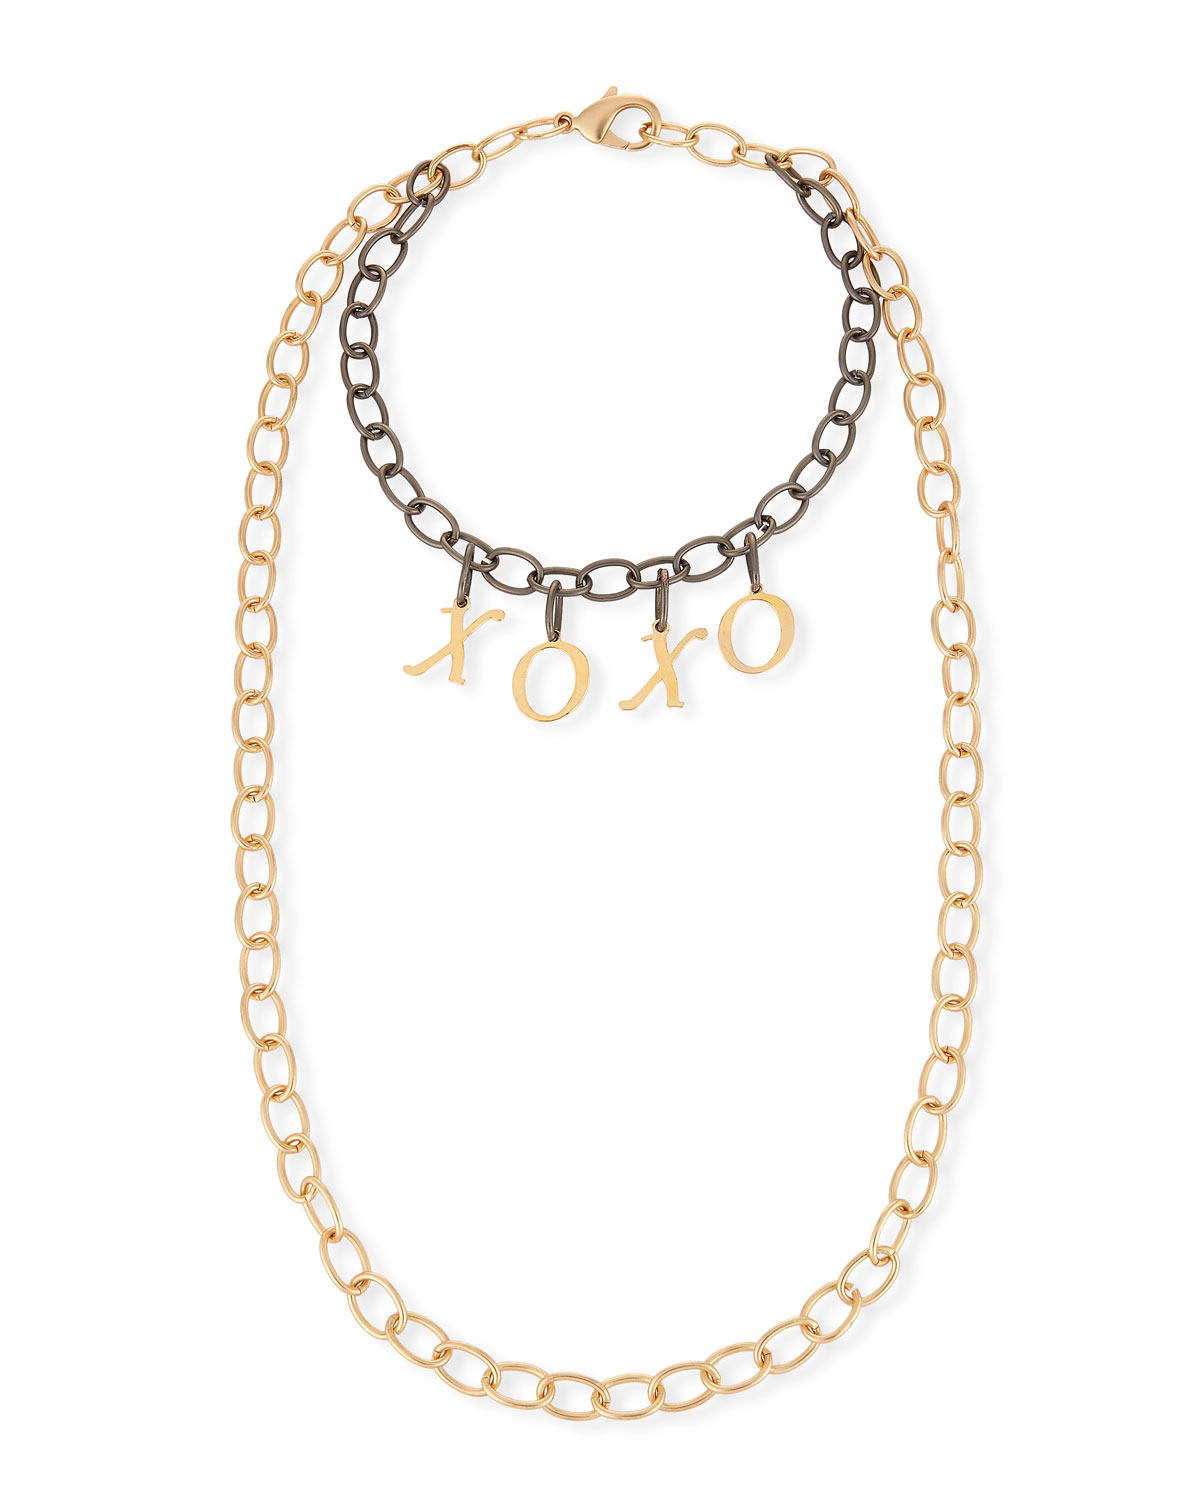 Hipchik Eugene Two-Tone XOXO Chain Necklace